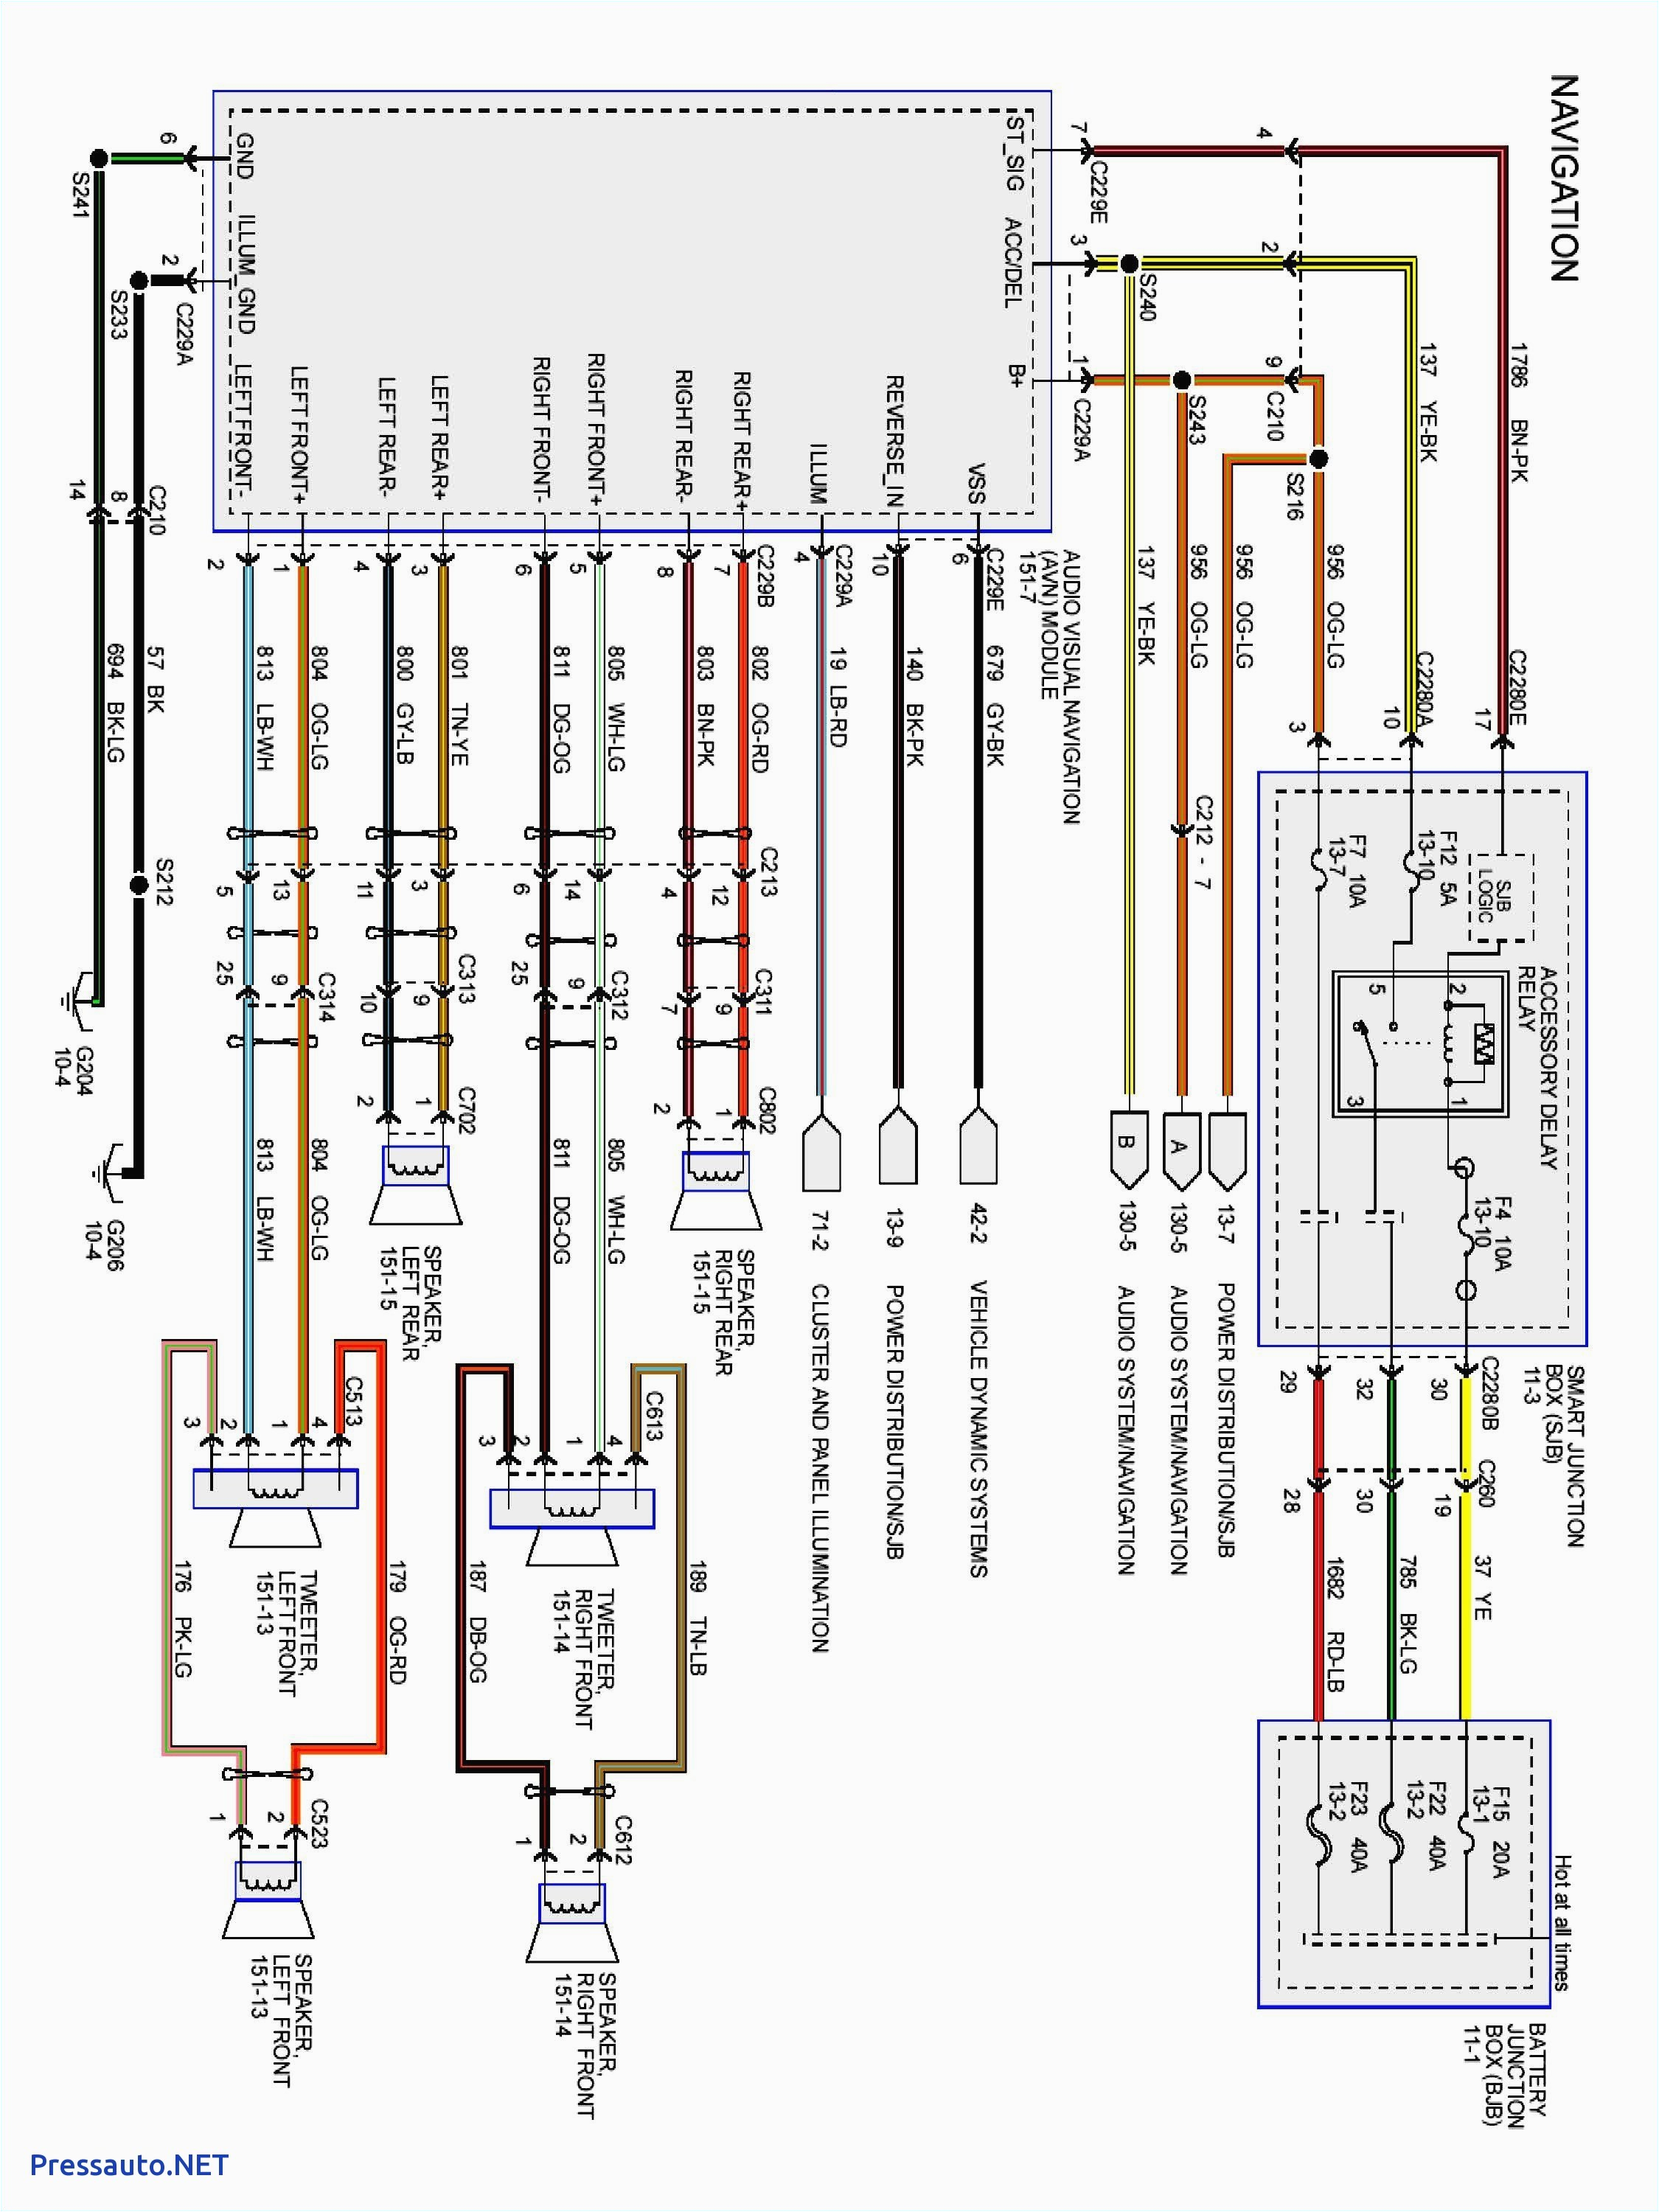 2007 ford focus radio wiring diagram wiring diagram new2001 ford focus radio wiring diagram premium wiring